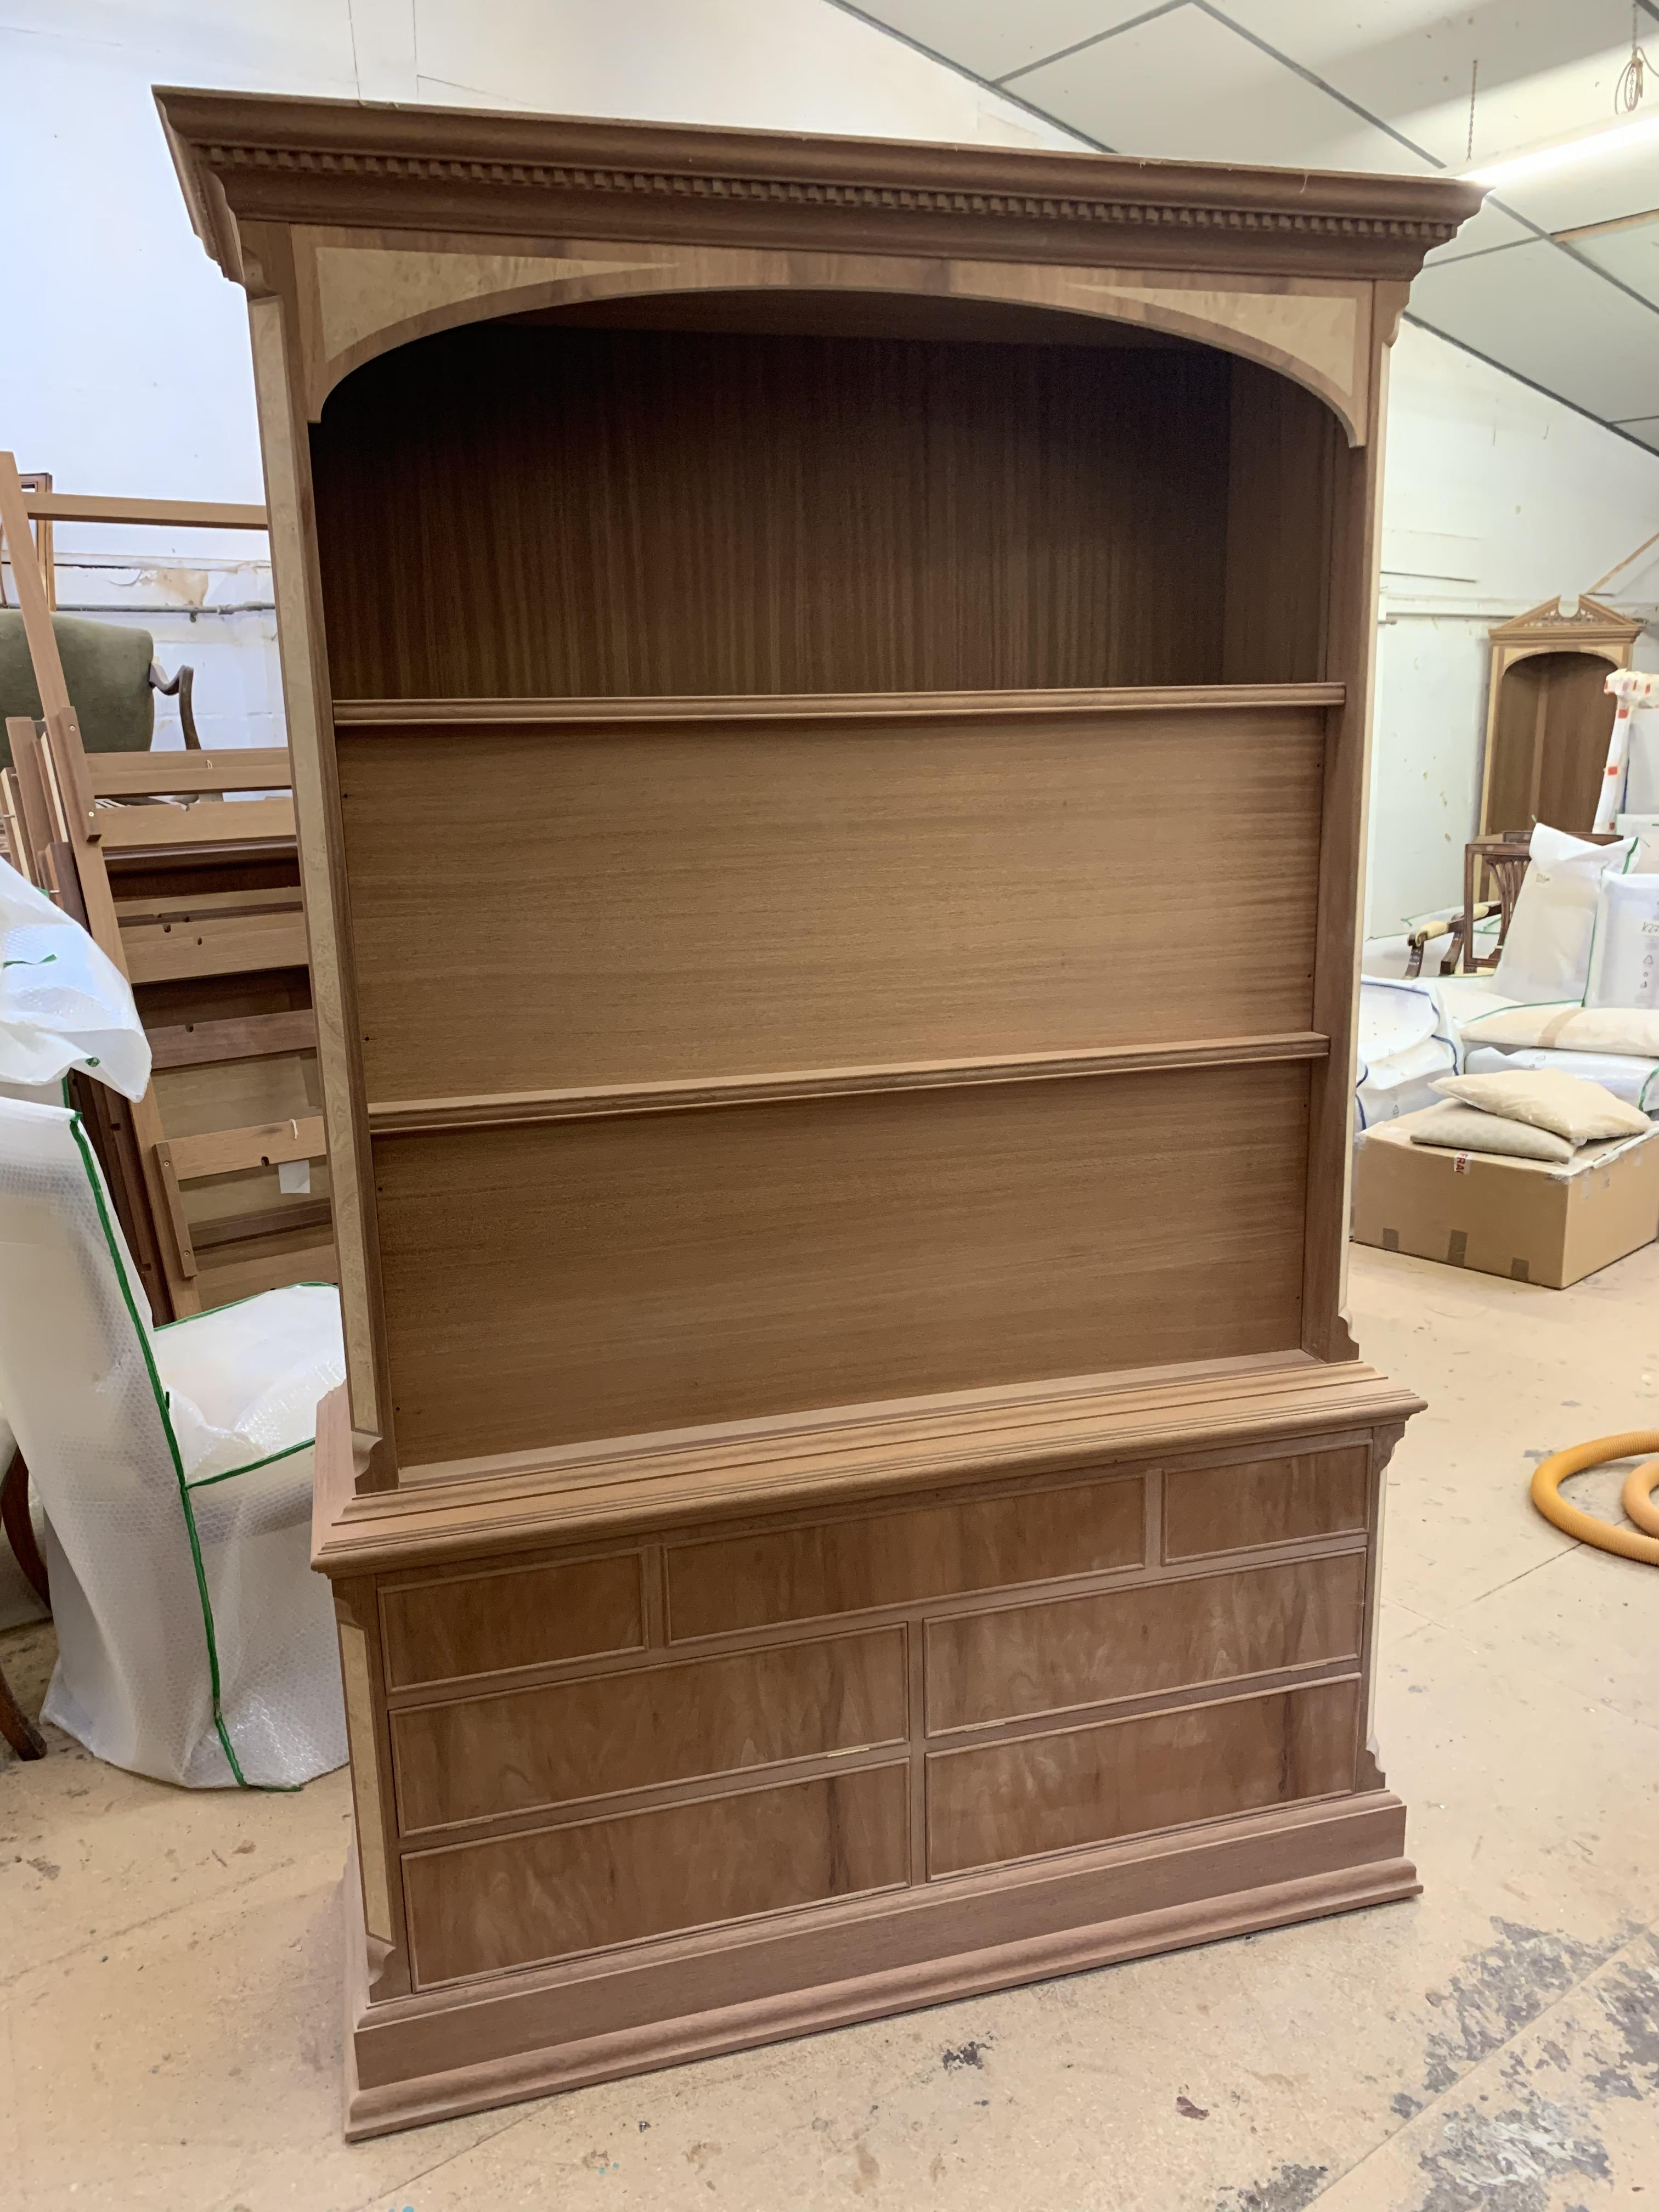 Lot 16 - Flatscreen Television Cabinet, disguised as bookcase, in mahogany finish, requires finishing/